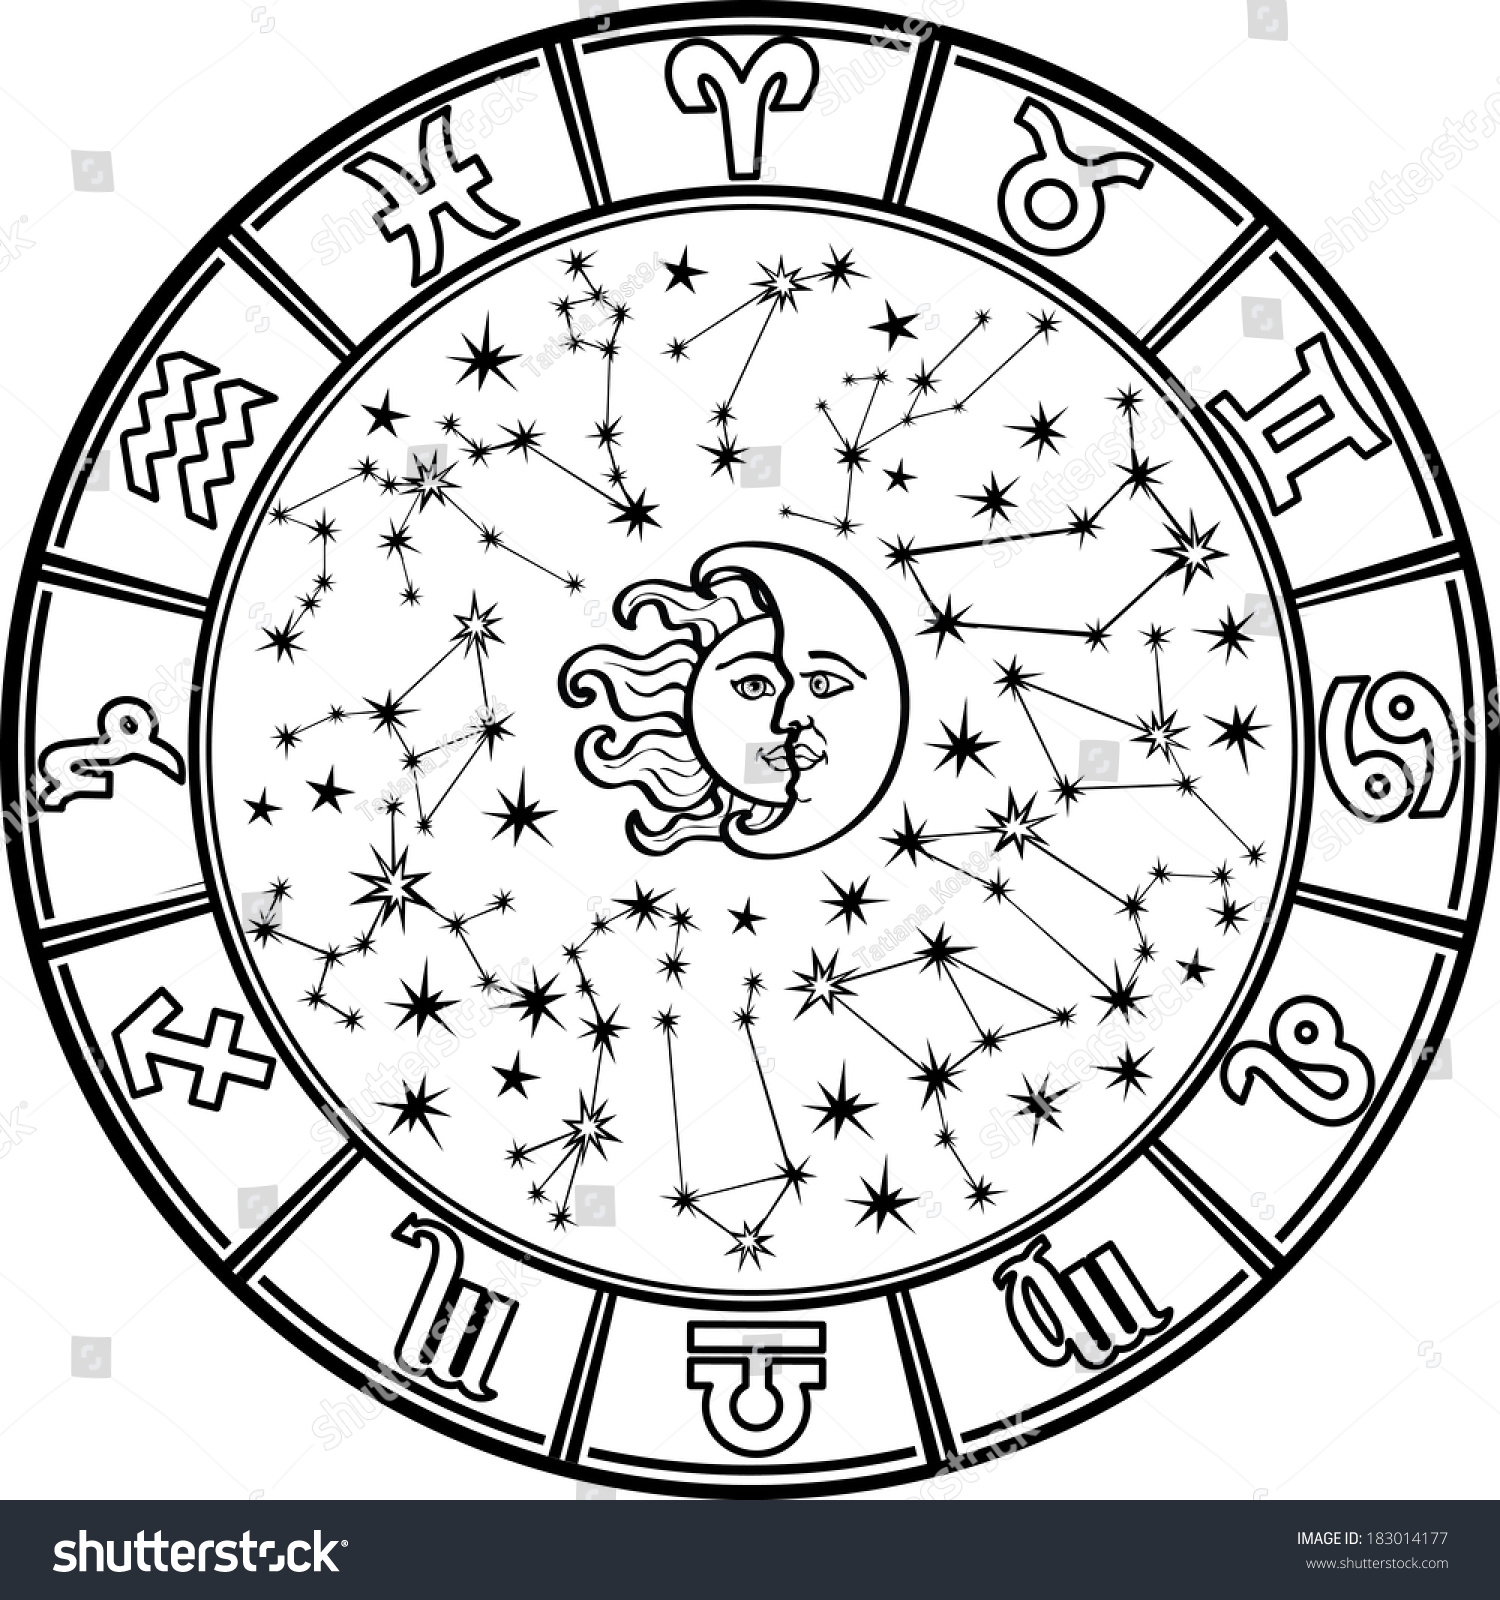 Horoscope circle zodiac signs constellations zodiacinside for What astrological sign am i